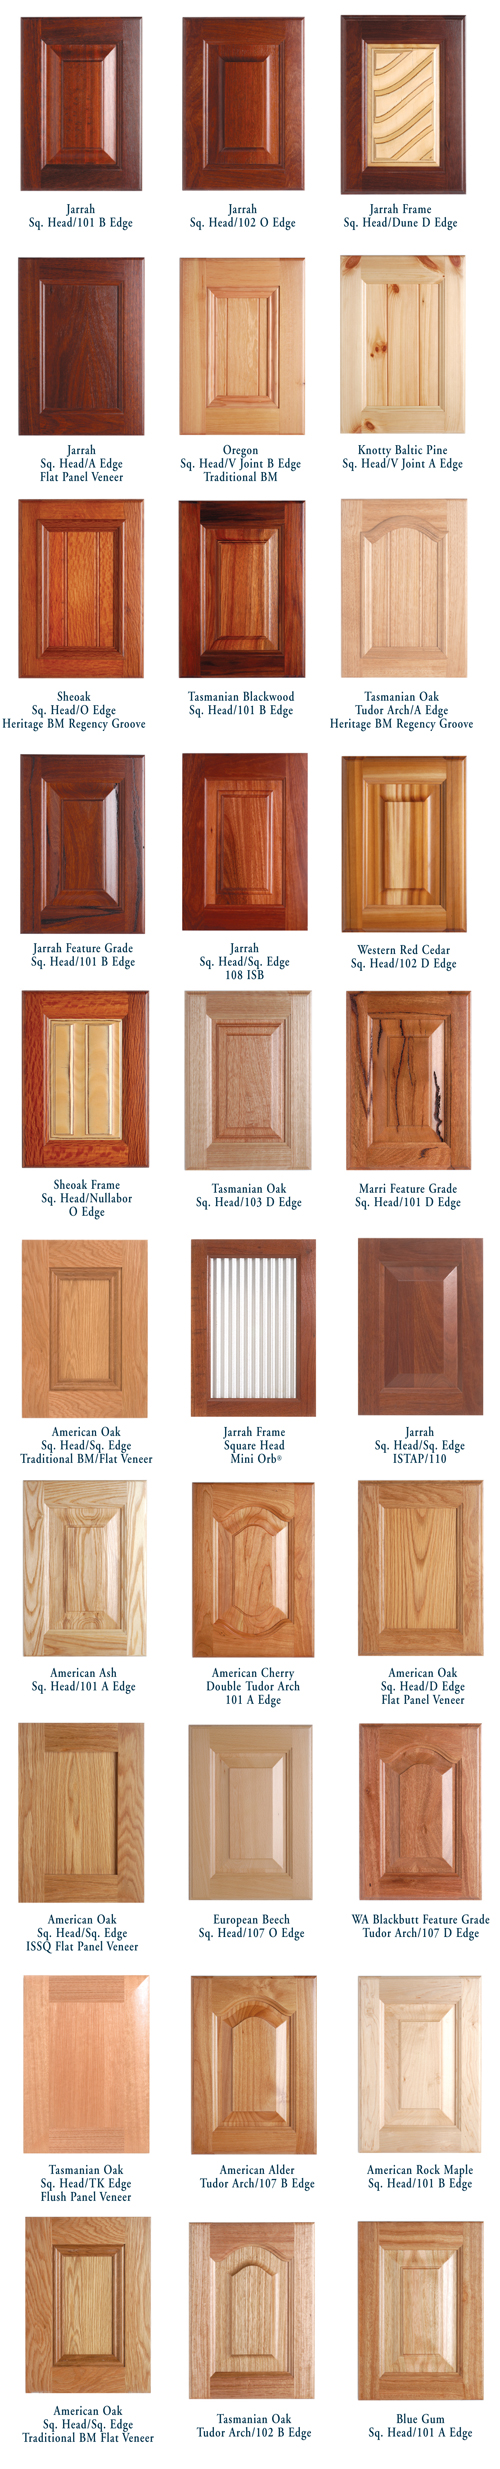 ... European Beech Fiji Cedar Hoop Pine Jarrah Lodgepole Pine MDF Nyatoh Oregon Radiata Pine Rock Maple Sheoak Tasmanian Oak Western Red Cedar.  sc 1 st  Hipages & Solid Timber Cabinet Doors - Proform Products